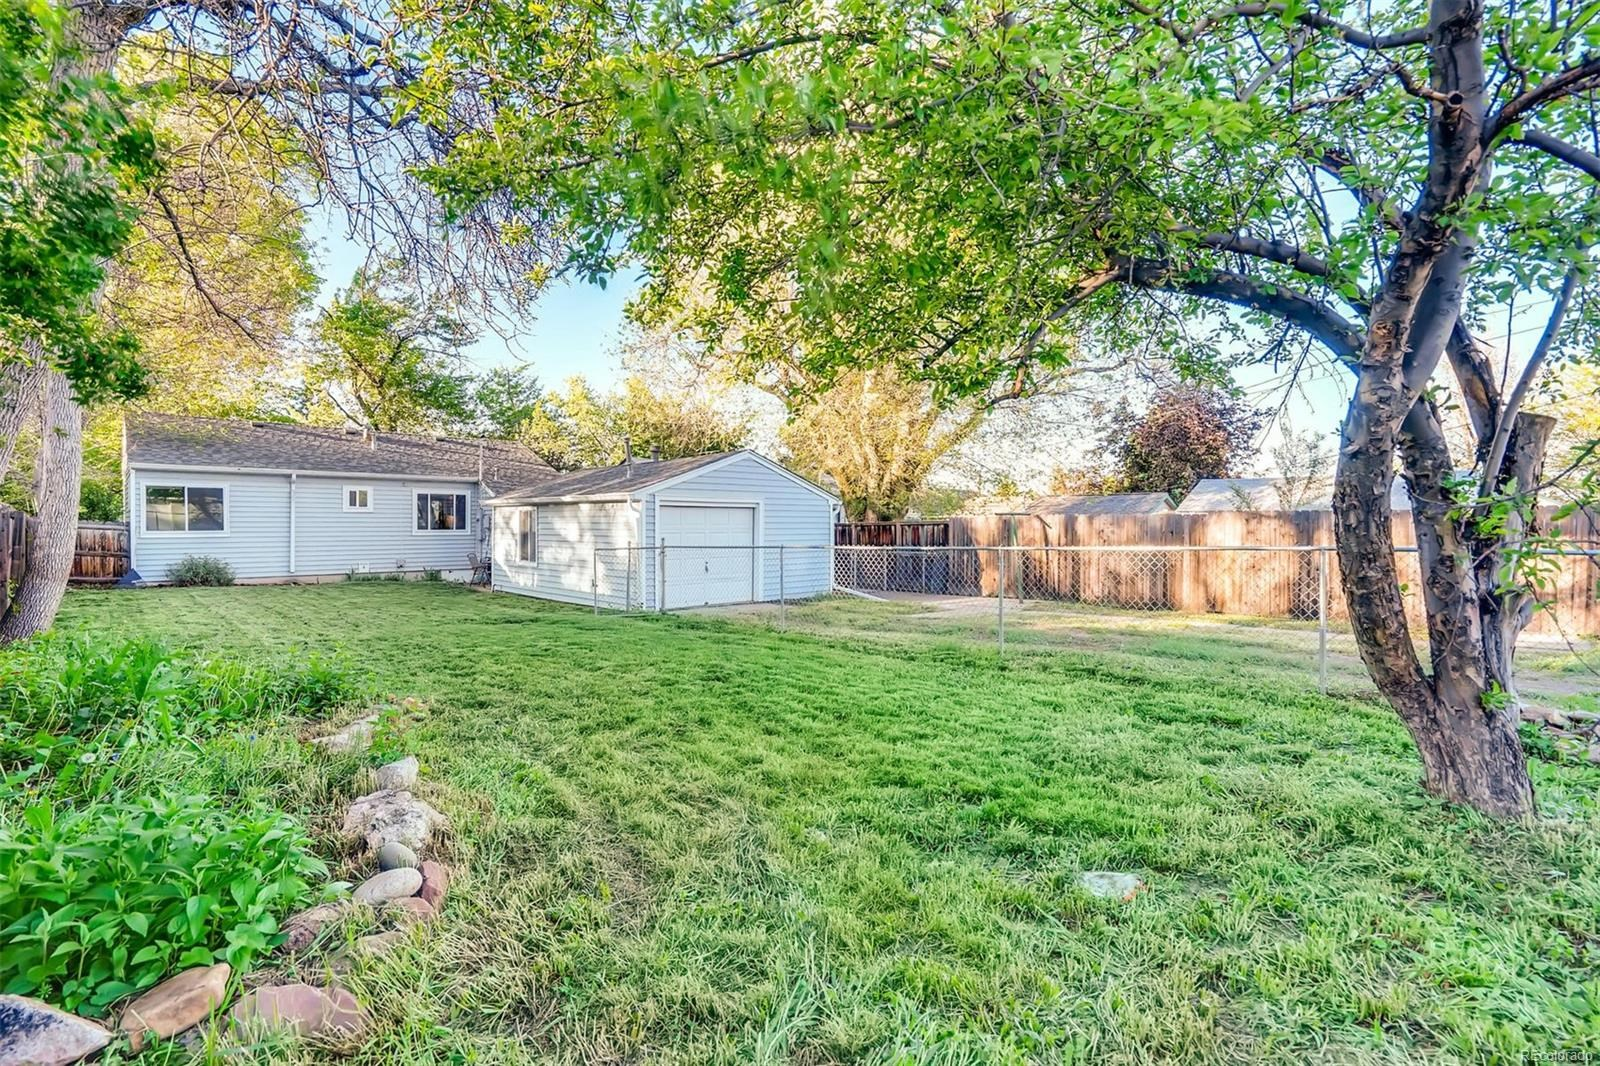 MLS# 7520359 - 11 - 2236 Columbine Avenue, Boulder, CO 80302